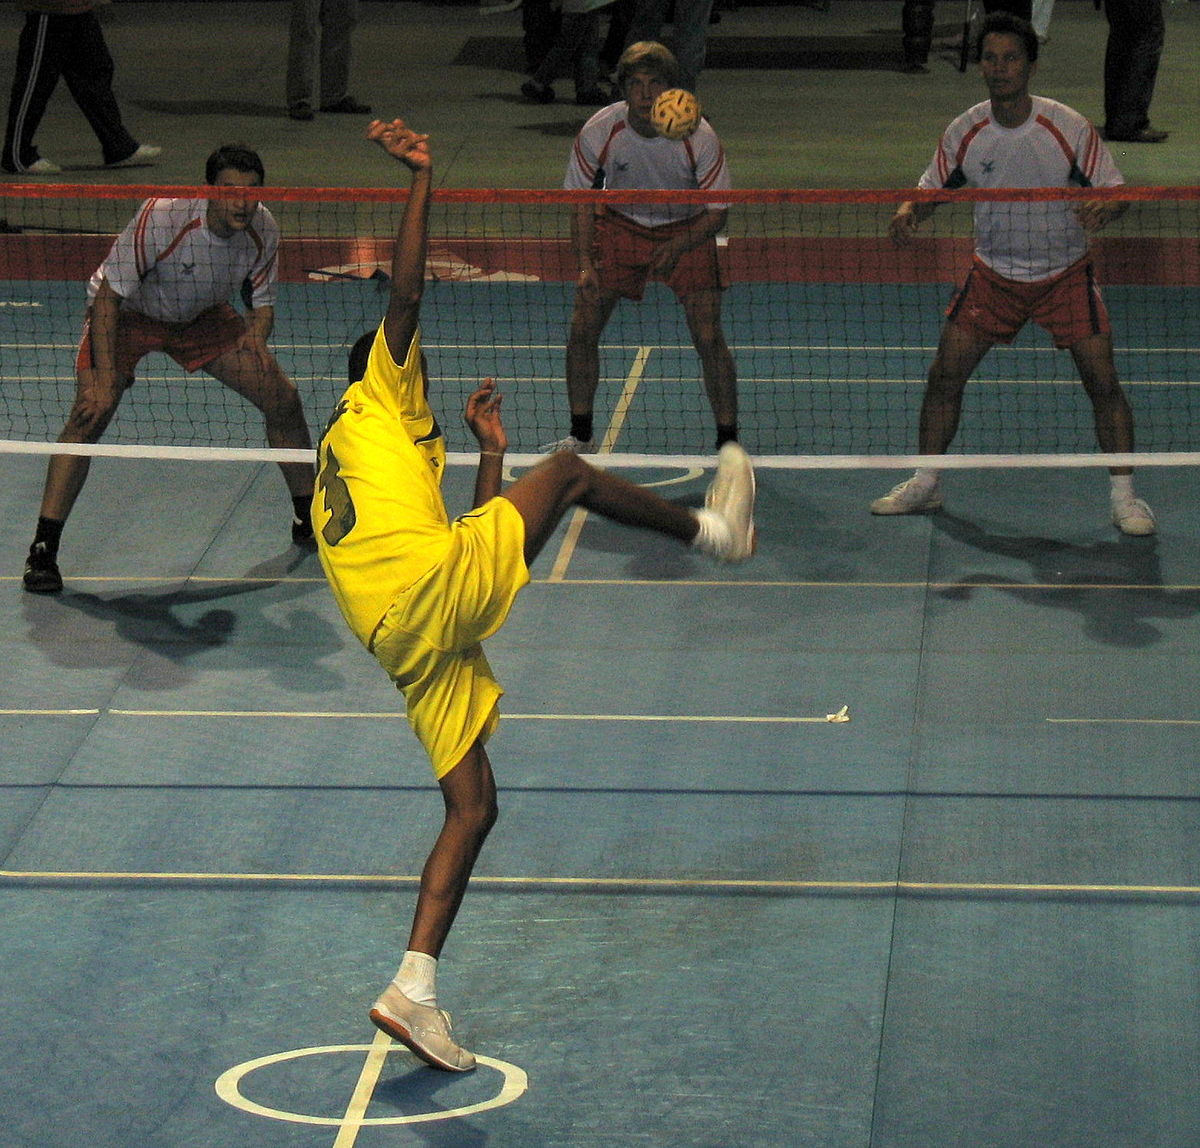 Asian Games 2018: Historic bronze medal in Sepaktakraw can help transform the sport in India